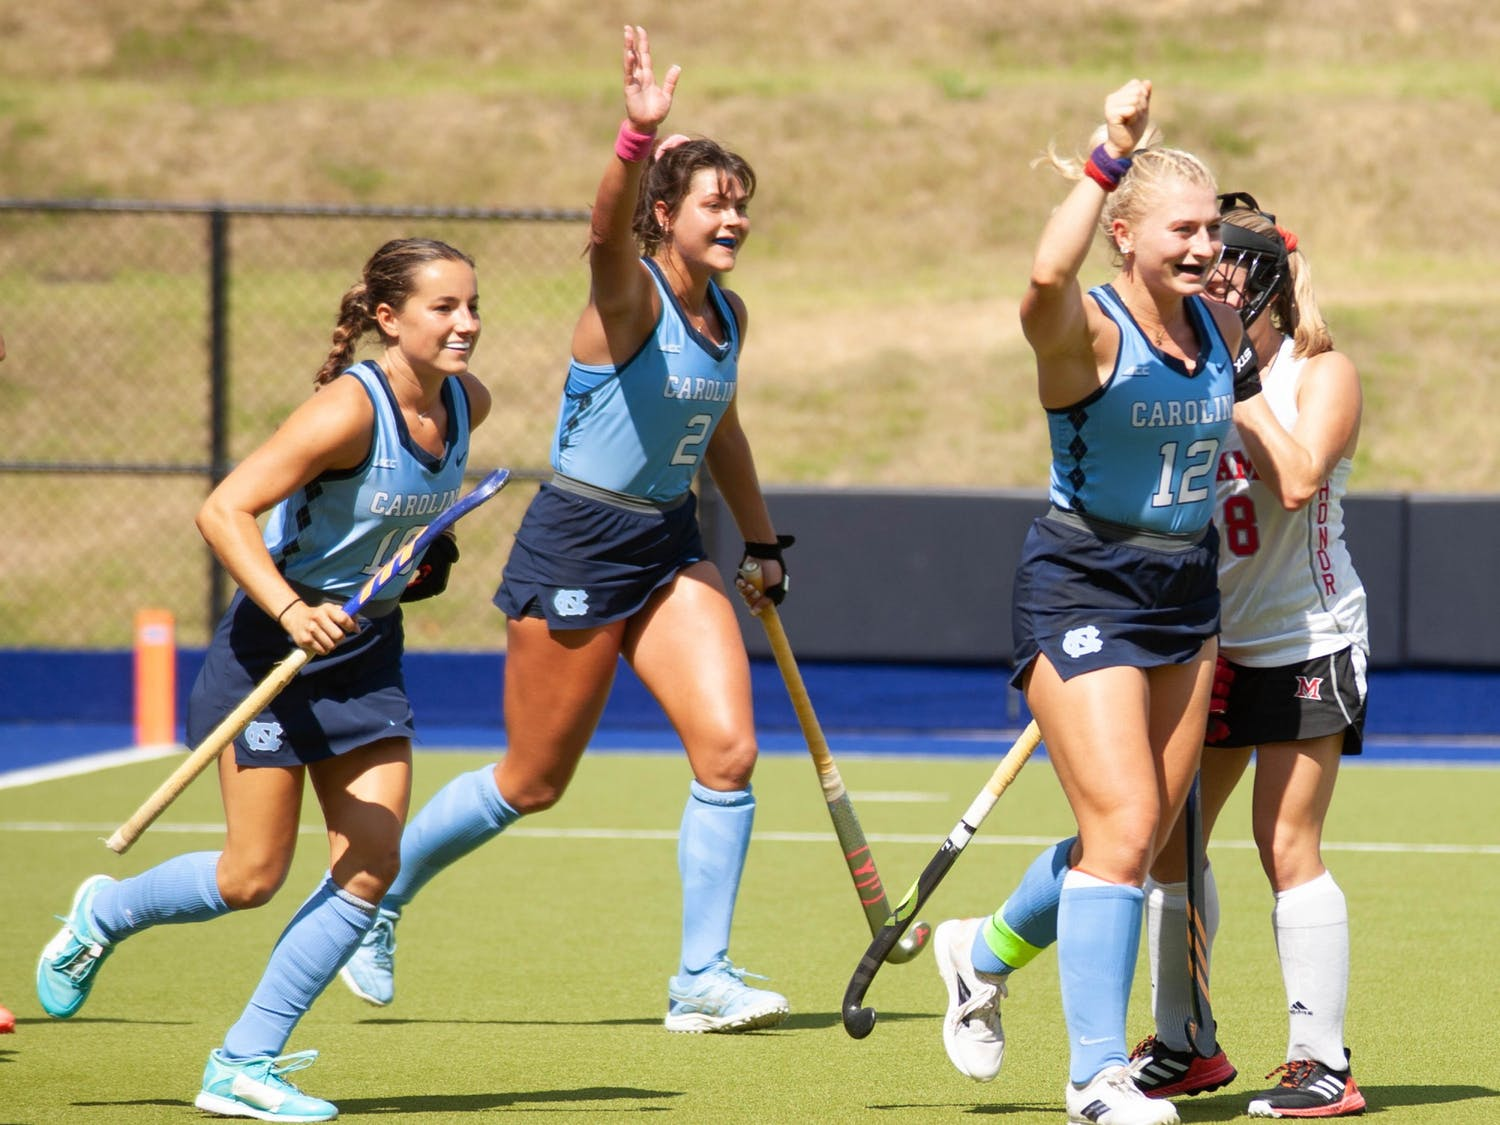 UNC players cheer after a successful goal during the field hockey game against the Miami Redhawks at Karen Shelton Stadium on Sept. 19, 2021. The Tar Heels defeated the Redhawks 7-2.